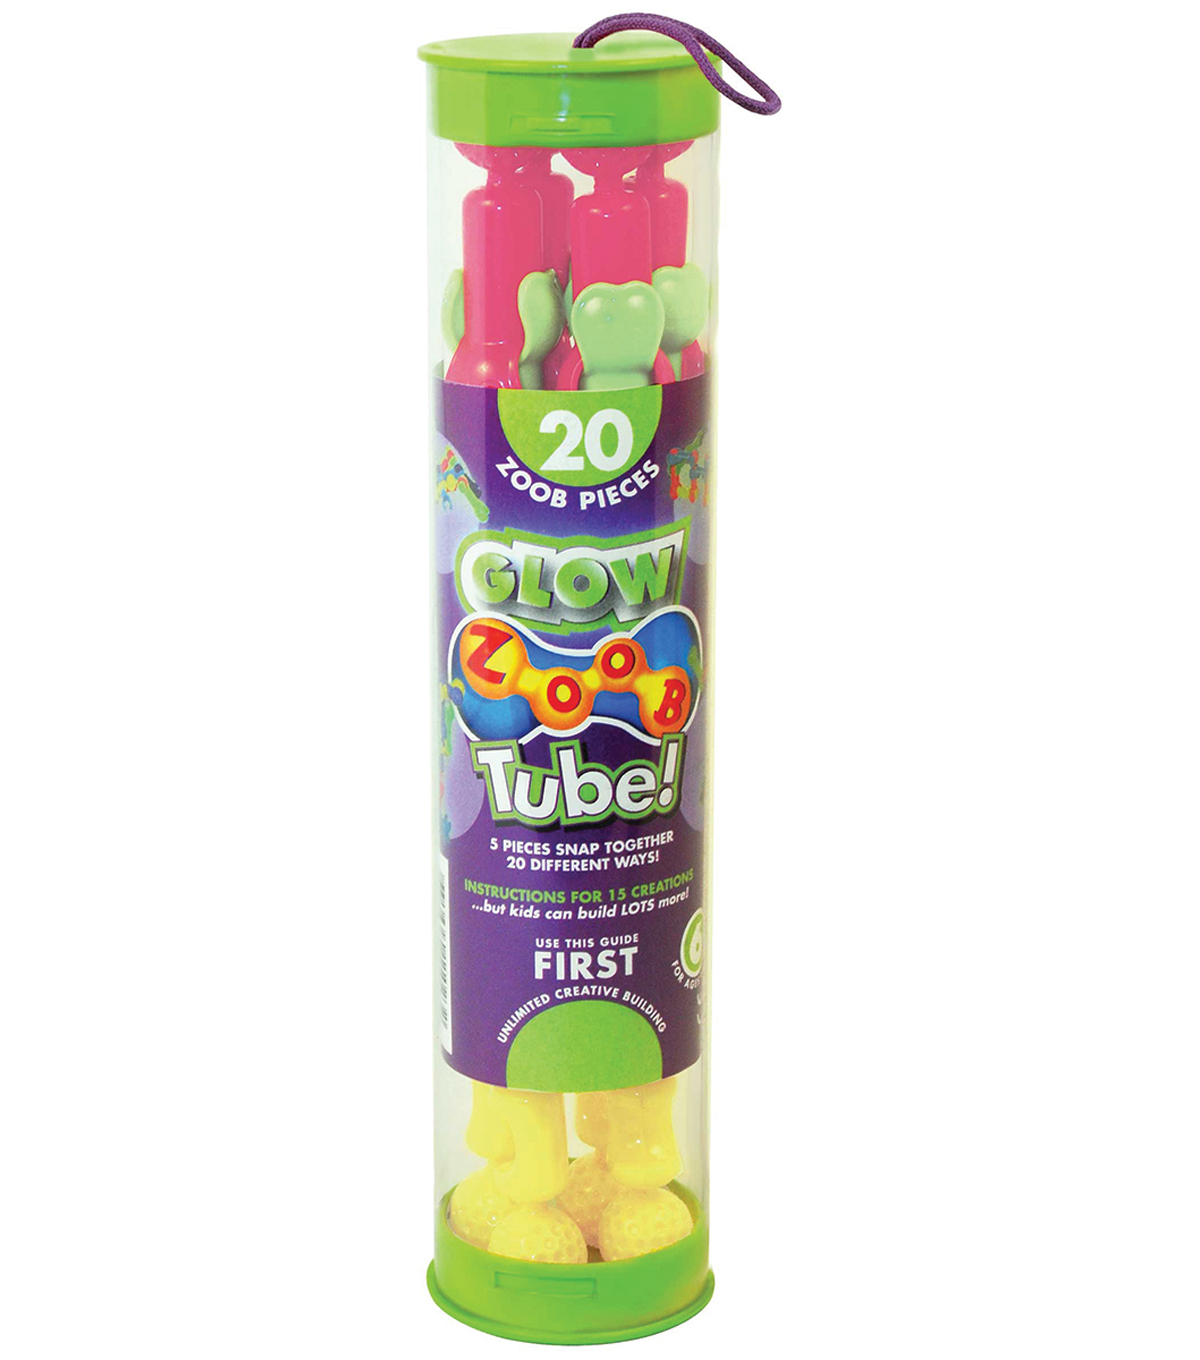 ZOOB Tube! 20 Pack-Glow In The Dark